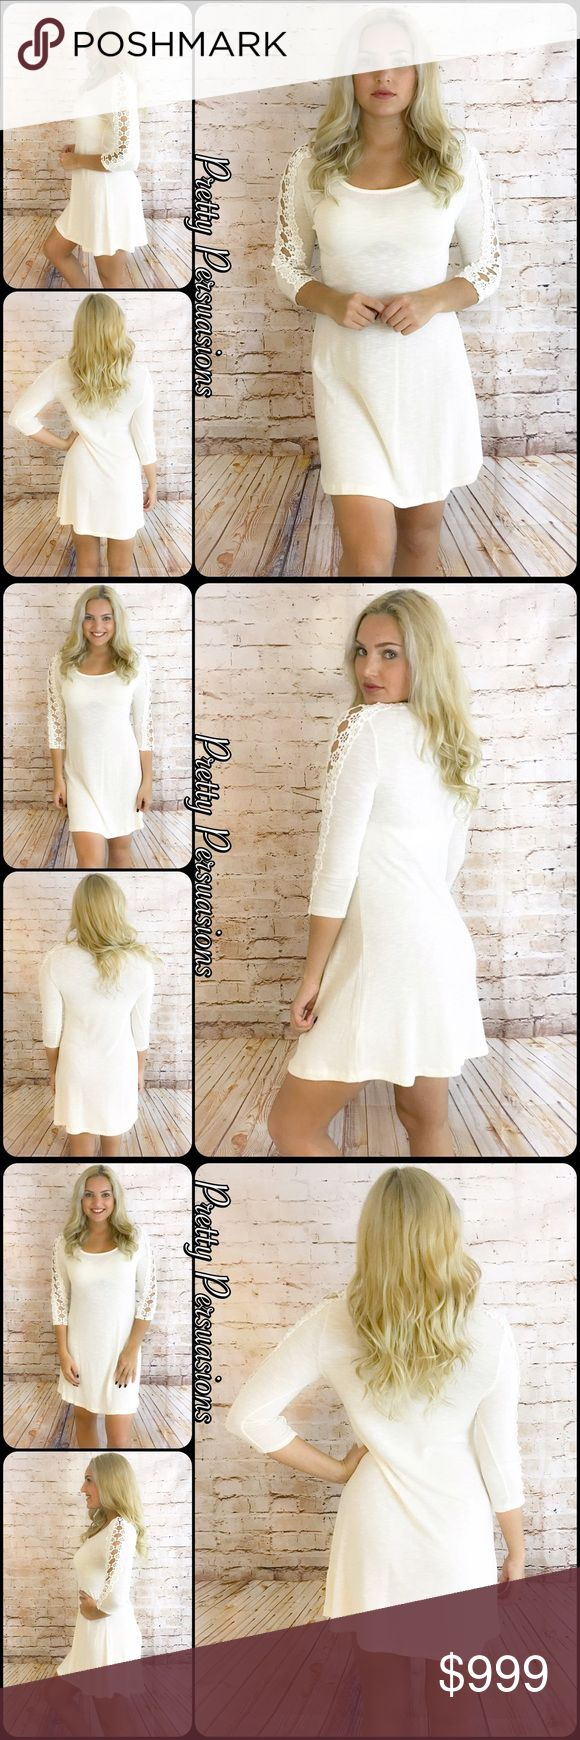 """NWT Cream & Crochet Sleeve Dress Tunic NWT Cream & Crochet Sleeve Dress Tunic  Available in S, M, L Measurements taken from a small  Length: 33"""" Bust: 34"""" Waist: 32""""  Rayon/Nylon/Spandex/Poly Made in the USA  Features  • 3/4 sleeves w/crochet accents  • rounded neckline  • super soft, breathable material w/stretch • relaxed, easy fit  Bundle discounts available  No pp or trades  Item # 1/105150380CCD cream crochet Pretty Persuasions Dresses"""